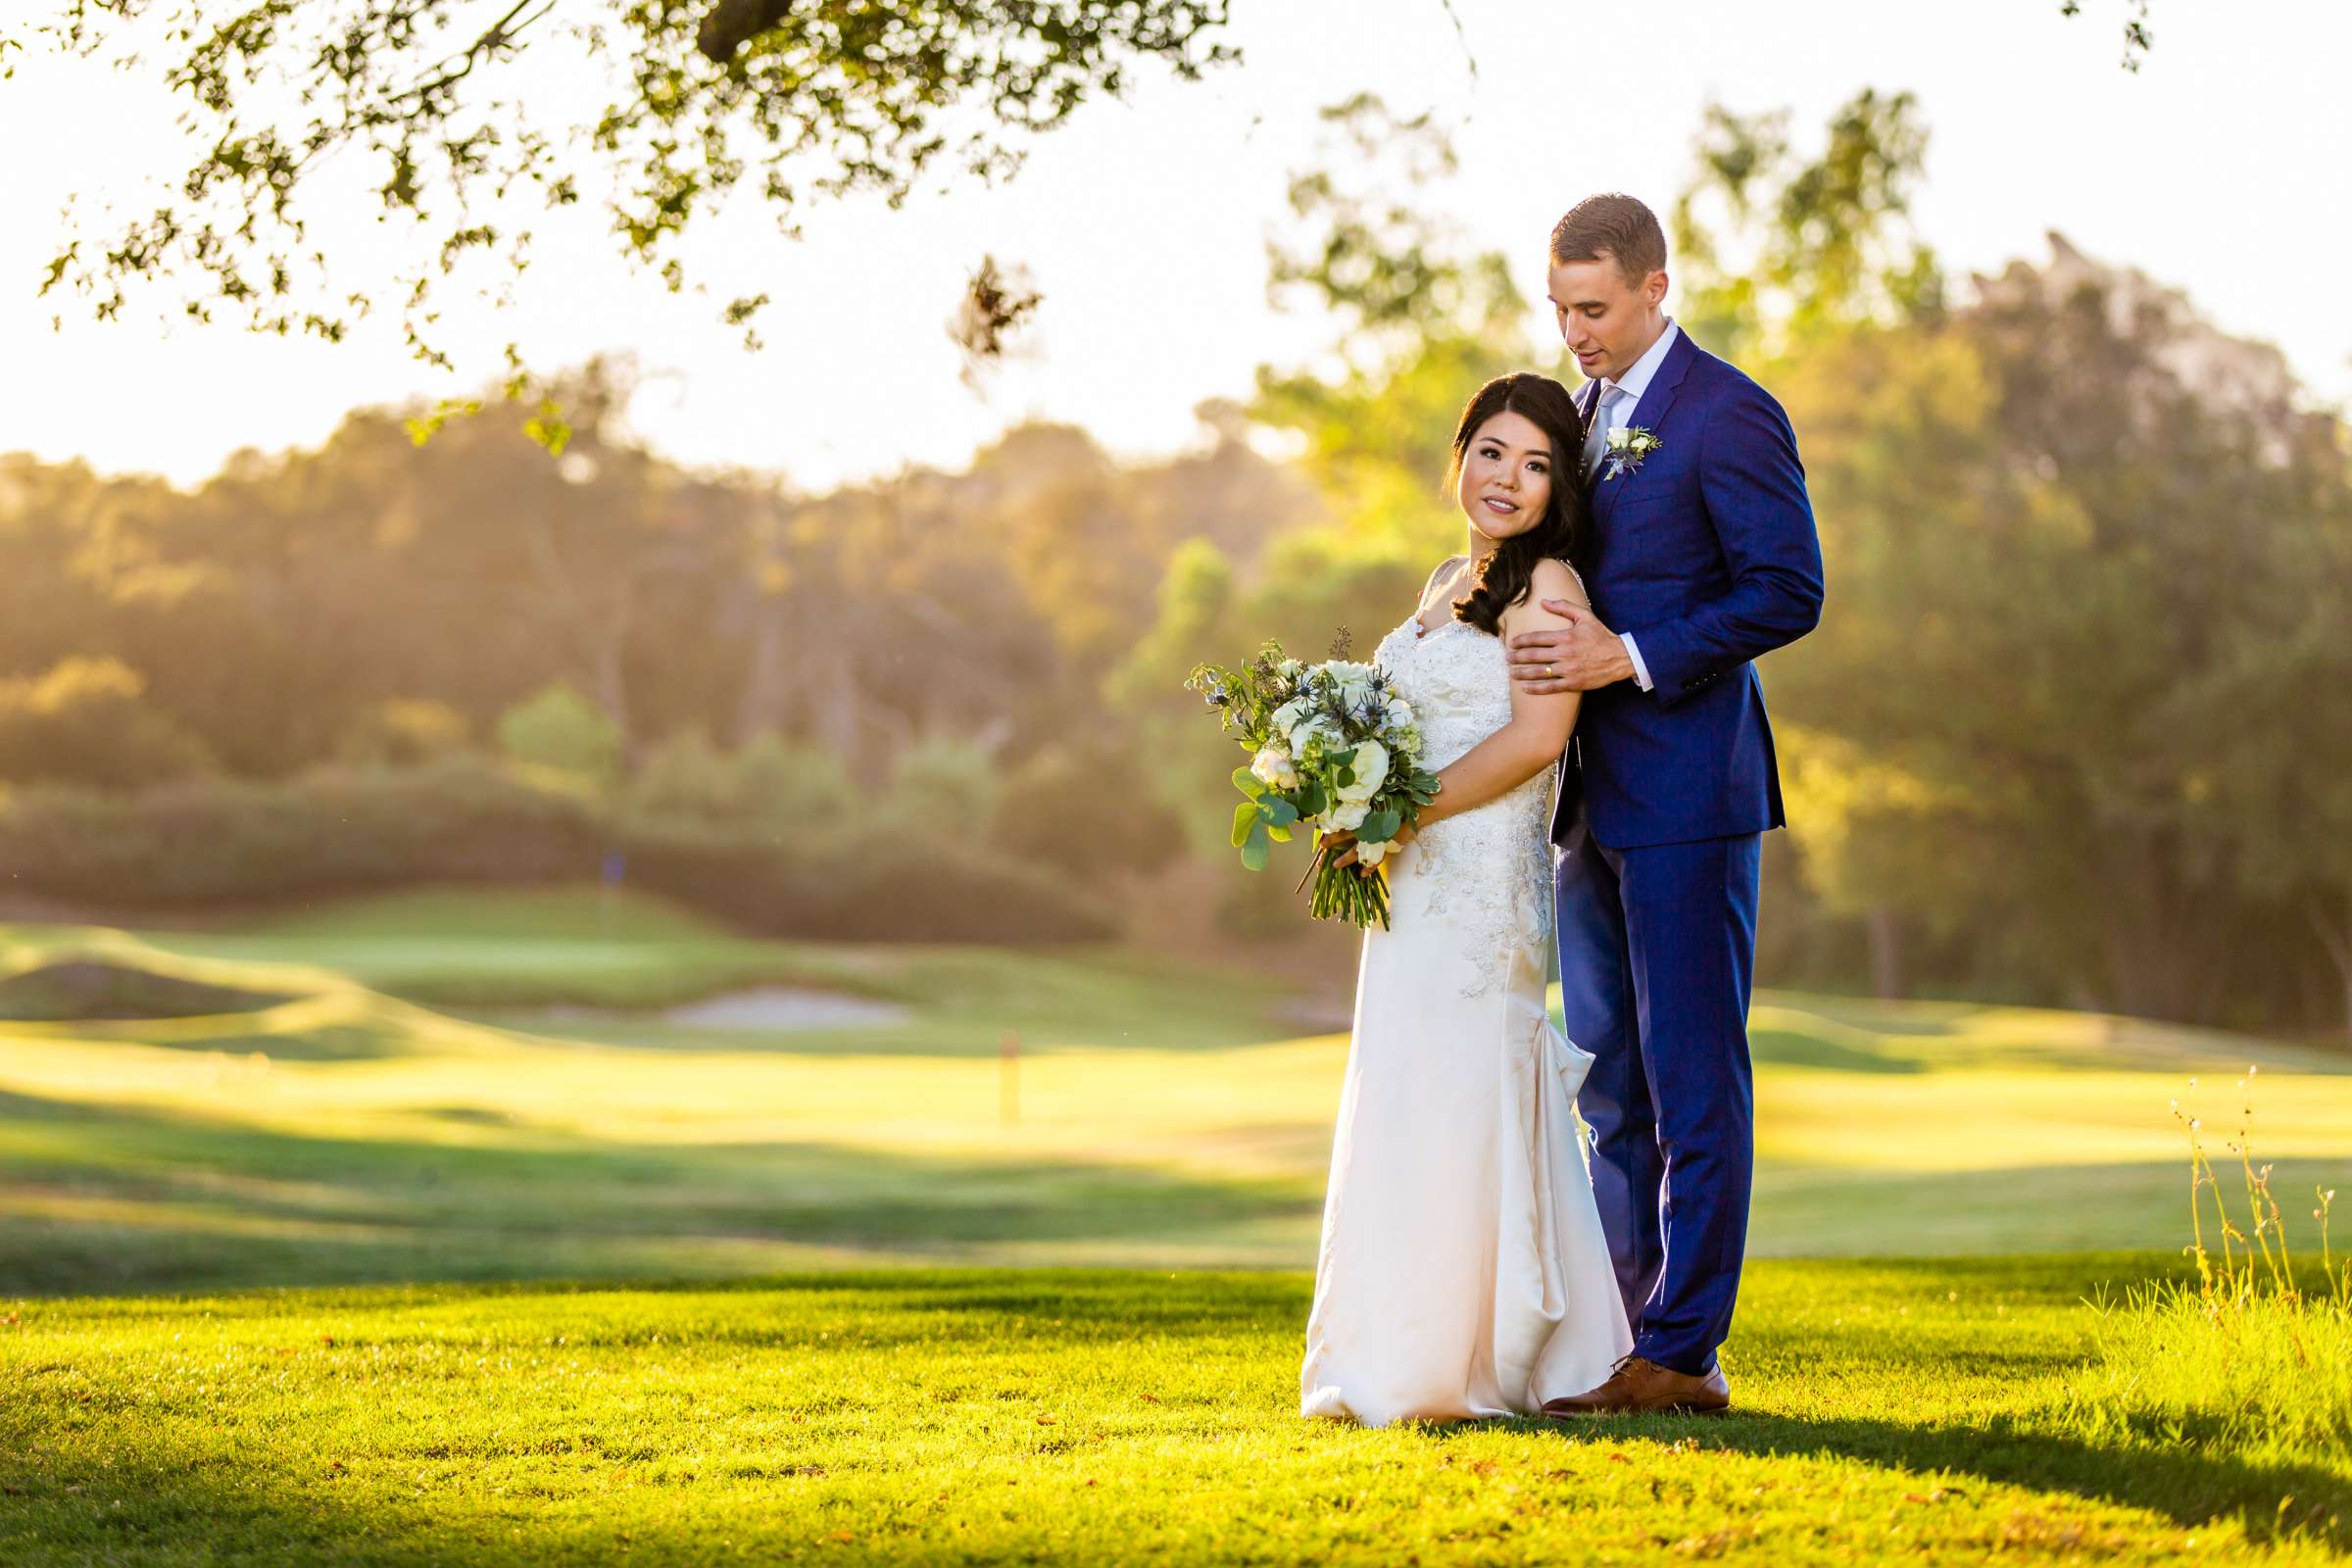 Mt Woodson Castle Wedding coordinated by I Do Weddings, Aya and Jared Wedding Photo #486987 by True Photography